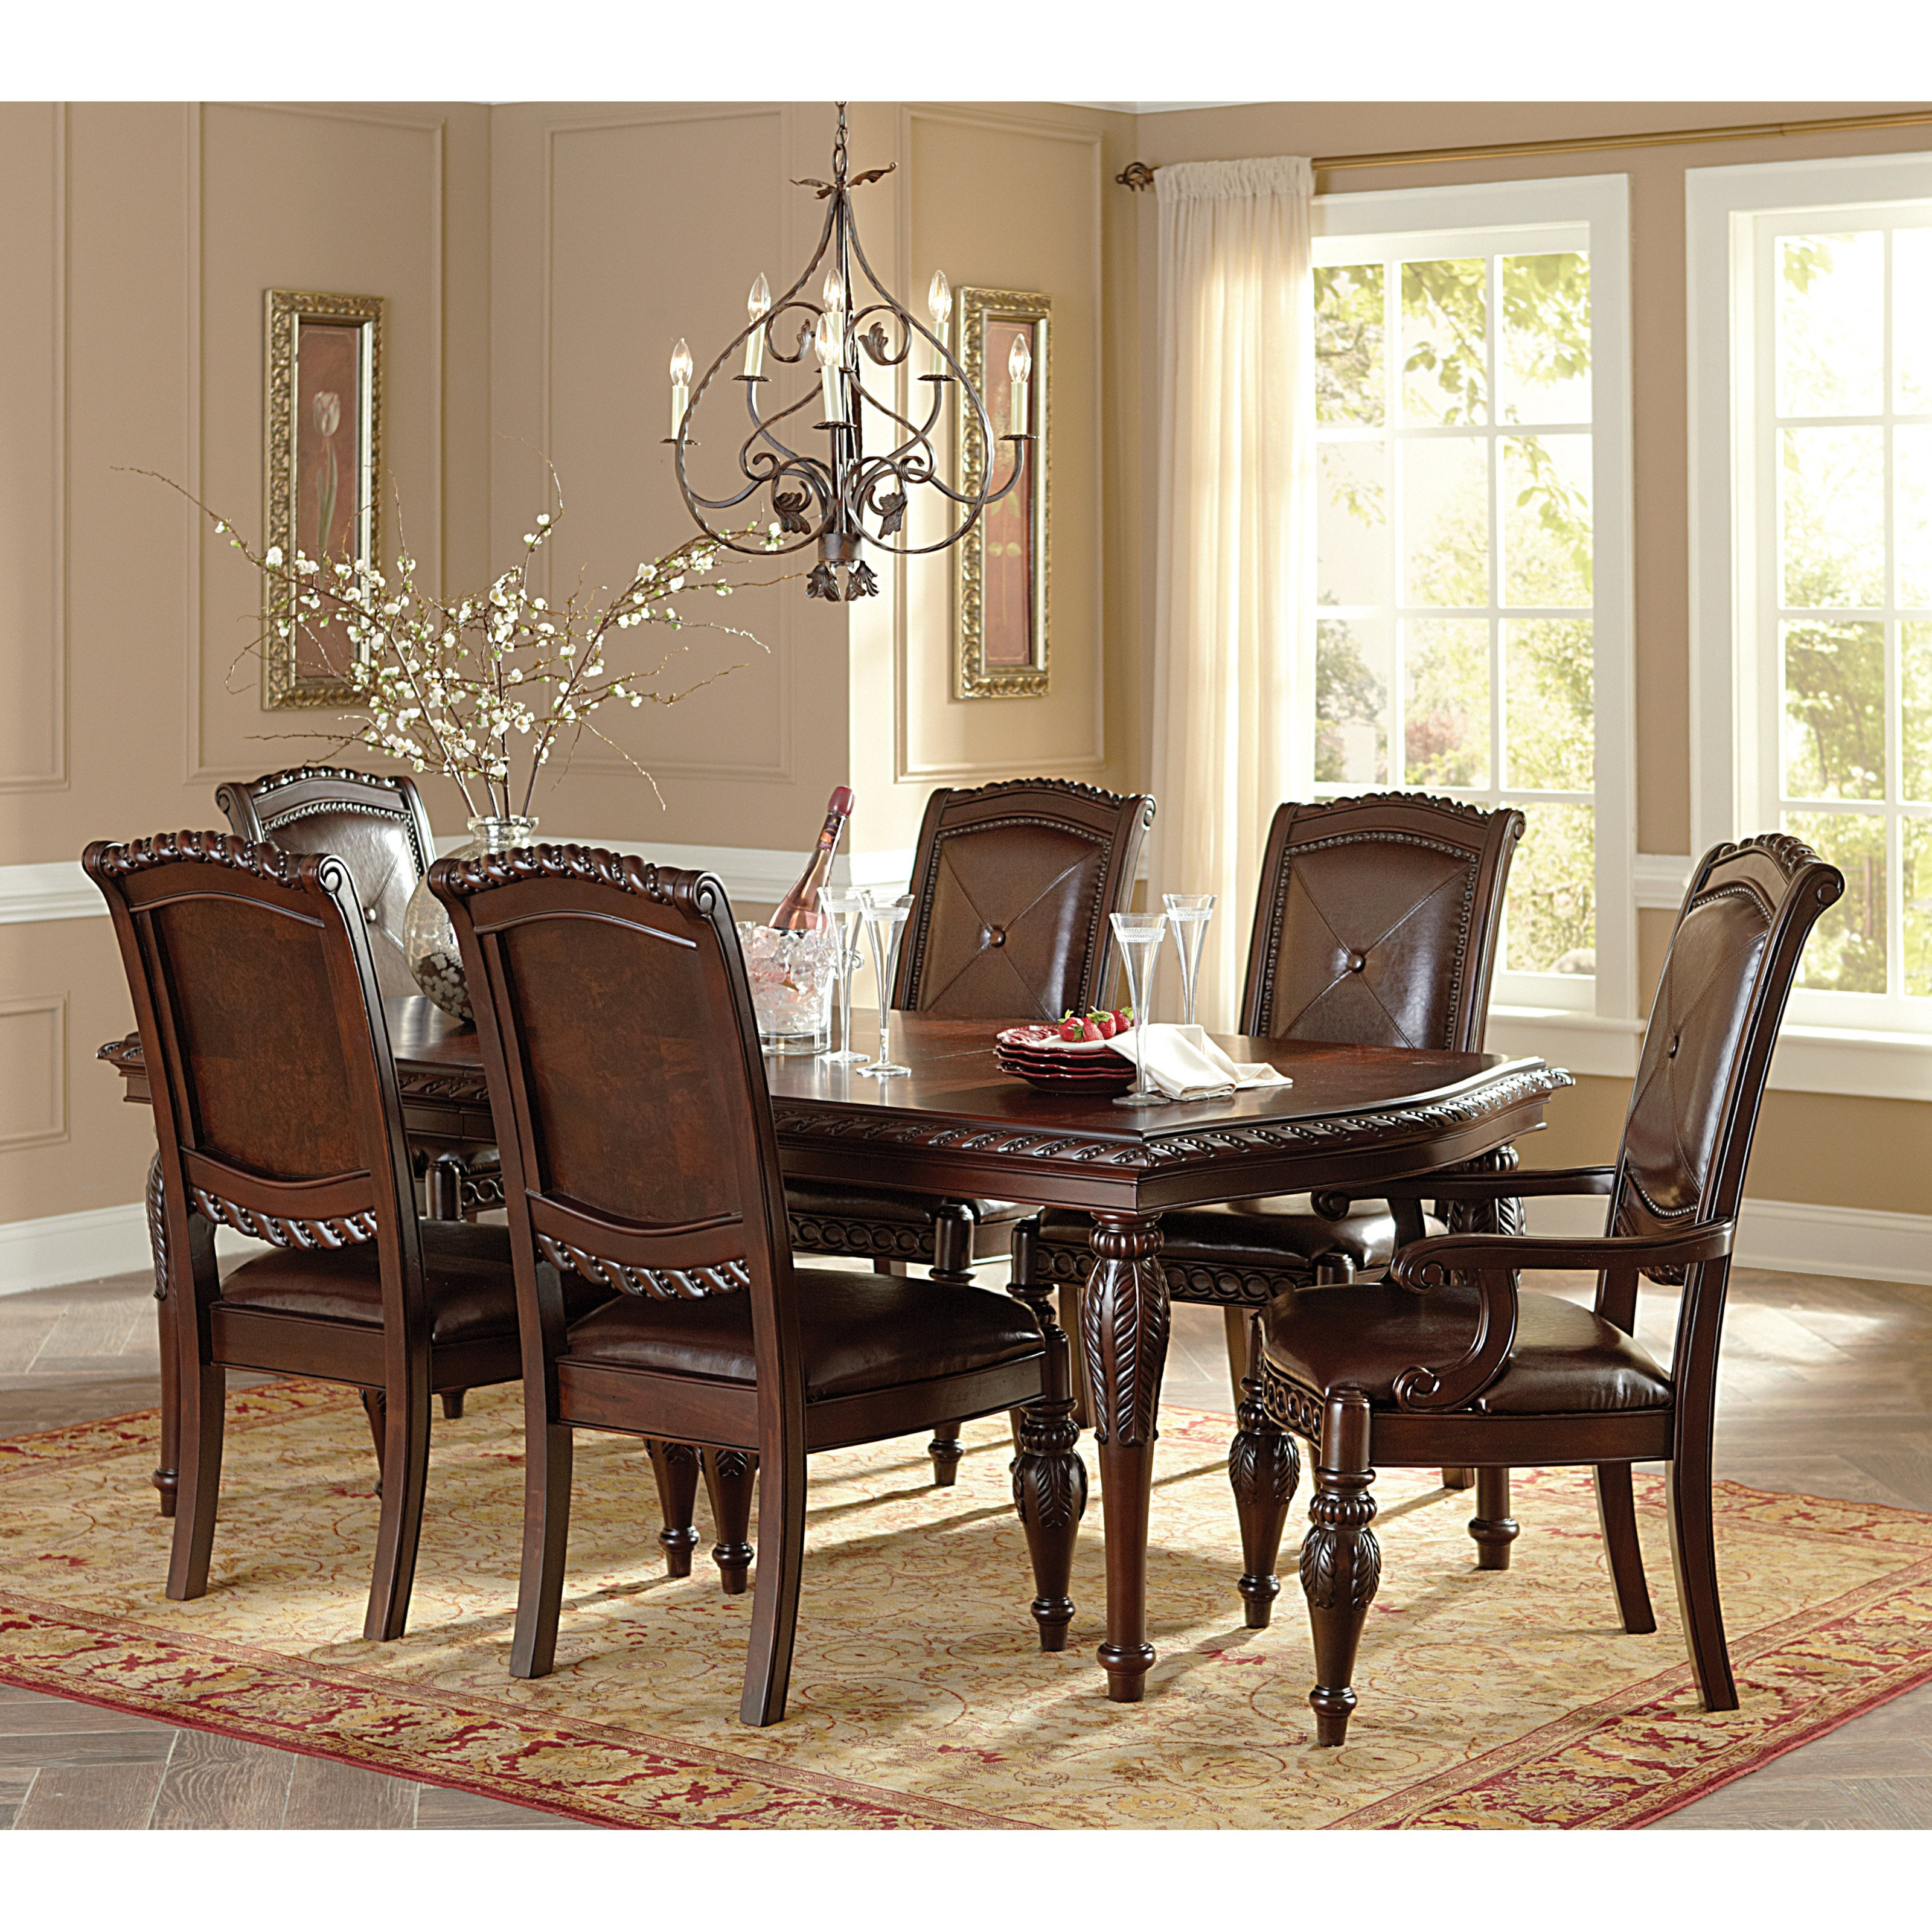 Steve Silver Antoinette Dining Armchairs Cherry -Set of 2 by Steve Silver Co